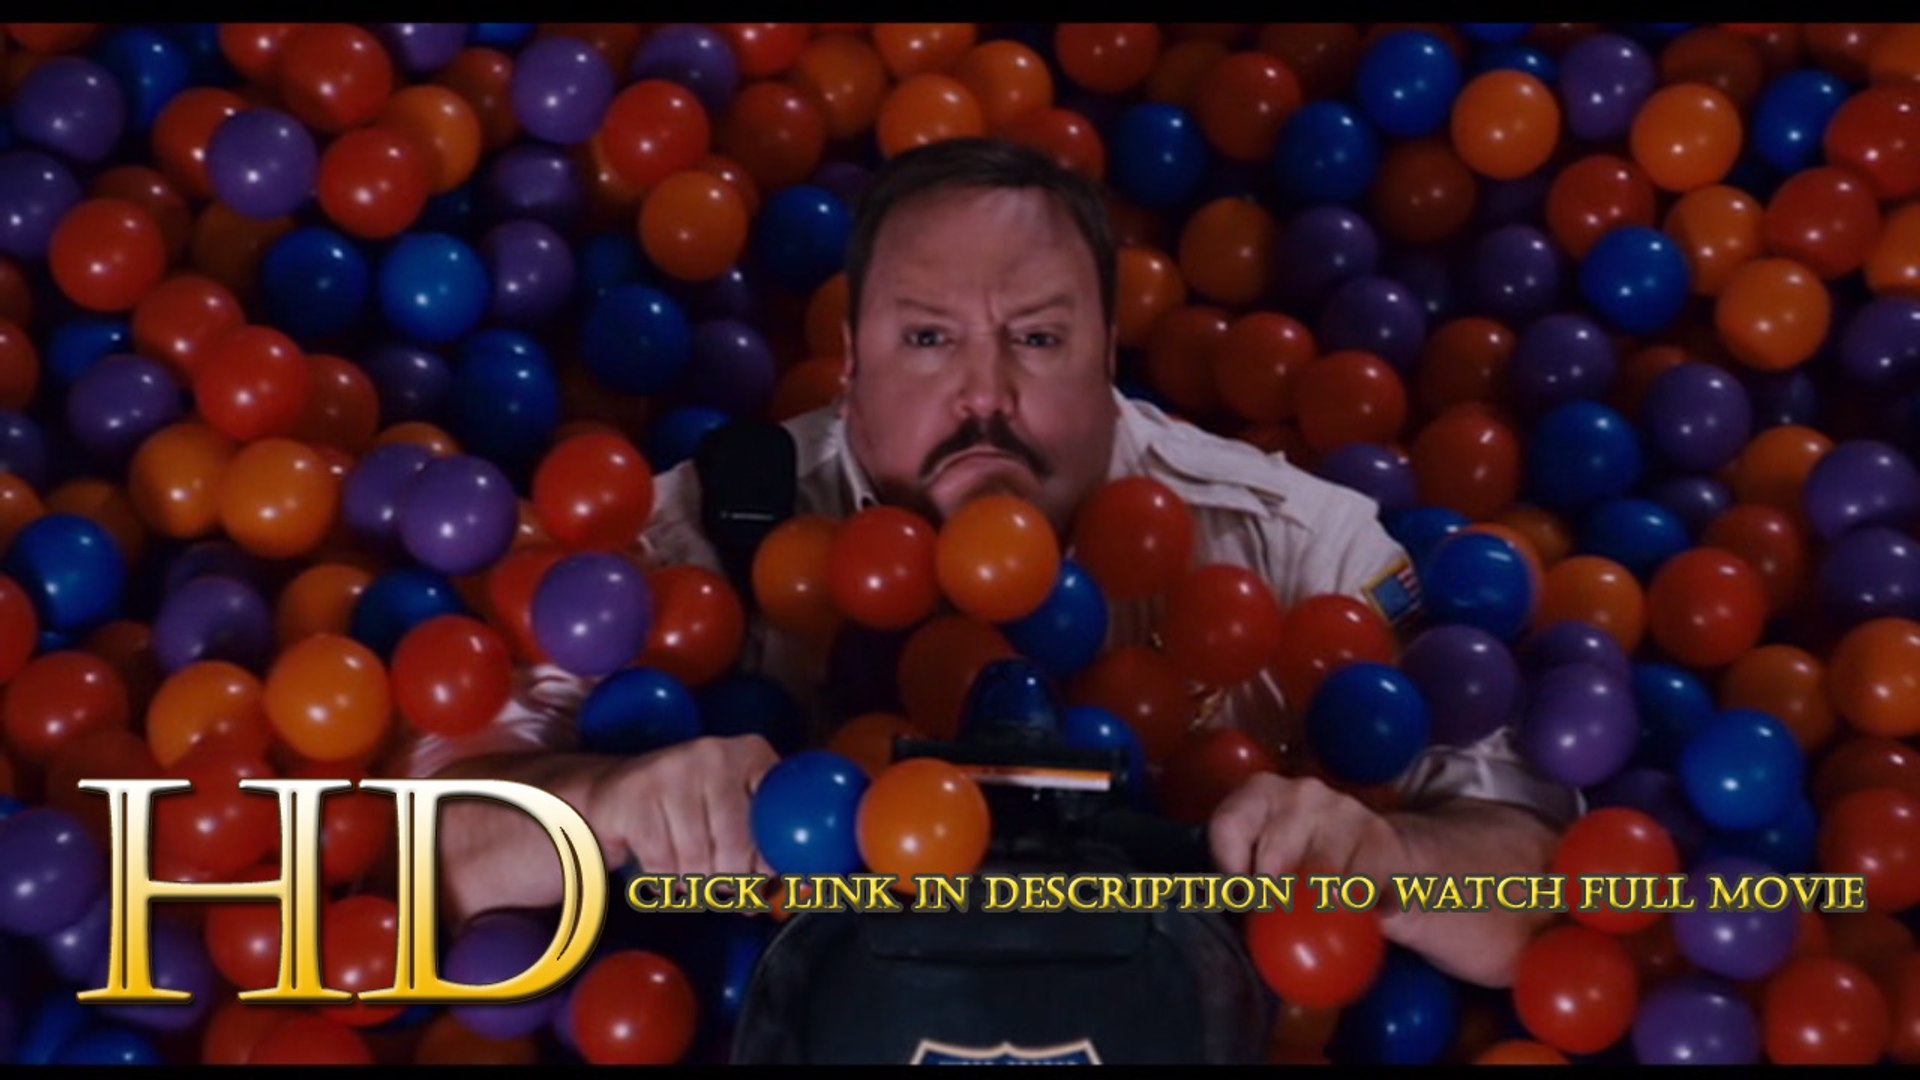 HD Movie, Paul Blart: Mall Cop 2 Watch Online HD Movie, Paul Blart: Mall Cop 2 2014 Best Movie.